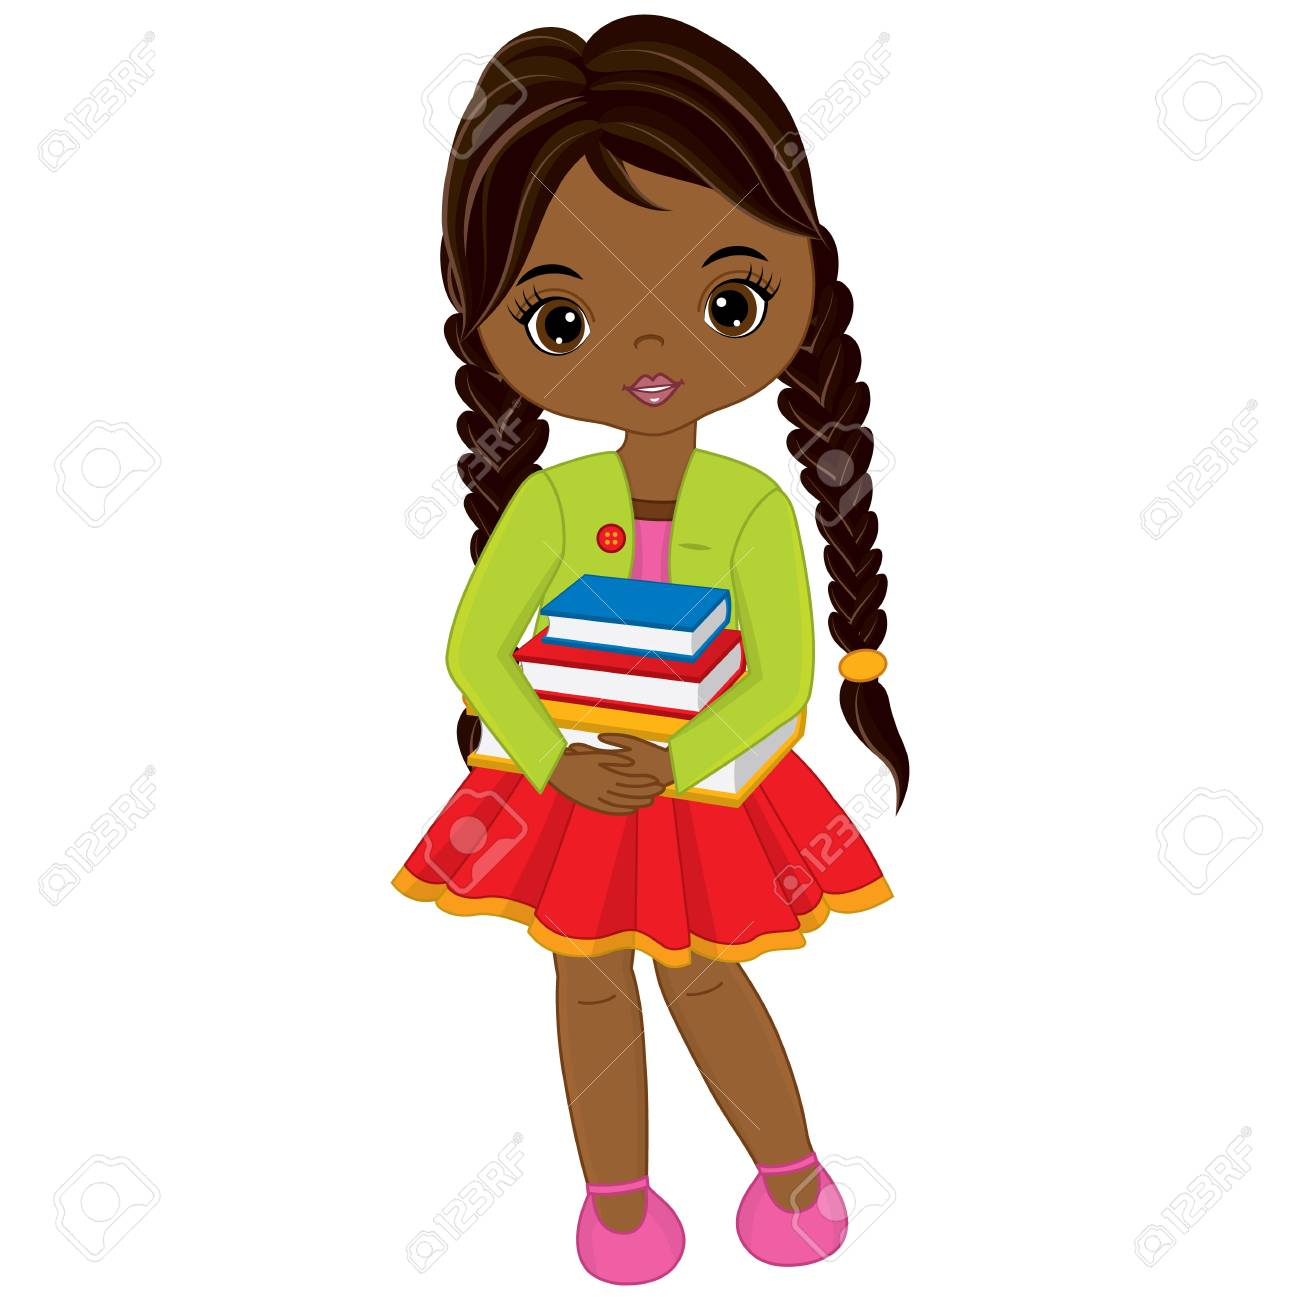 American girl clipart 6 » Clipart Station.